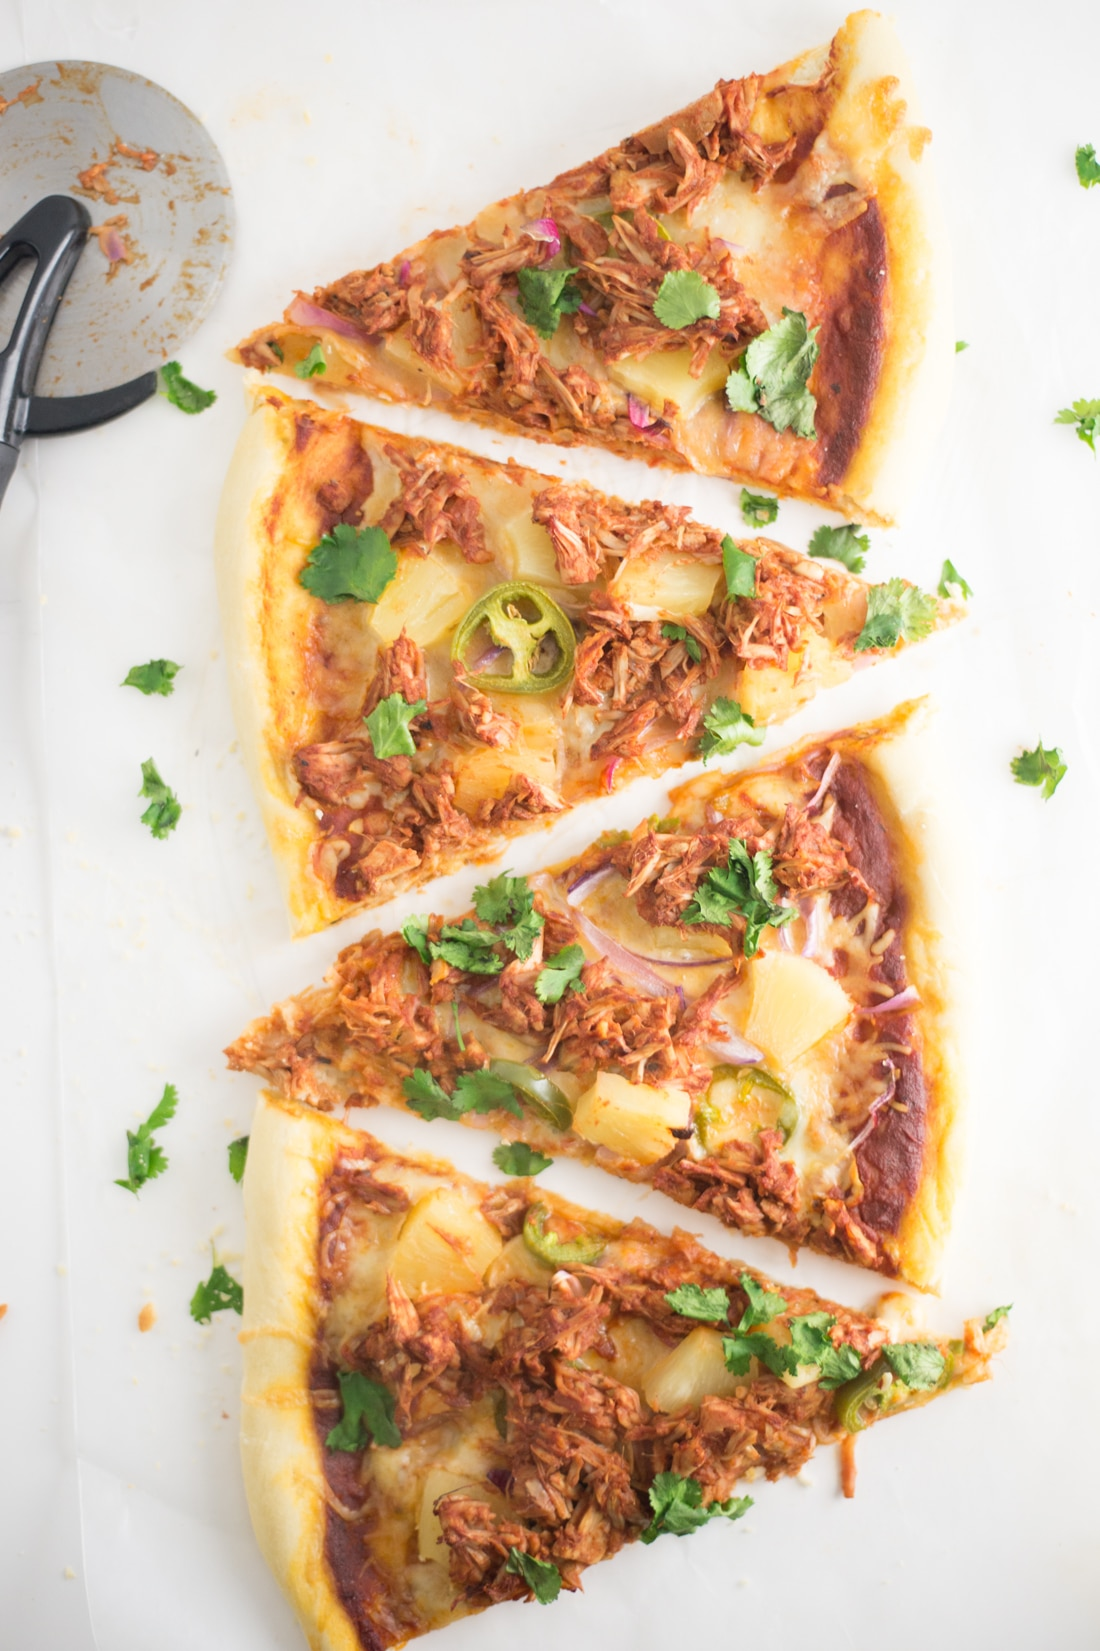 jackfruit pulled pork pizza on white background with pizza cutter